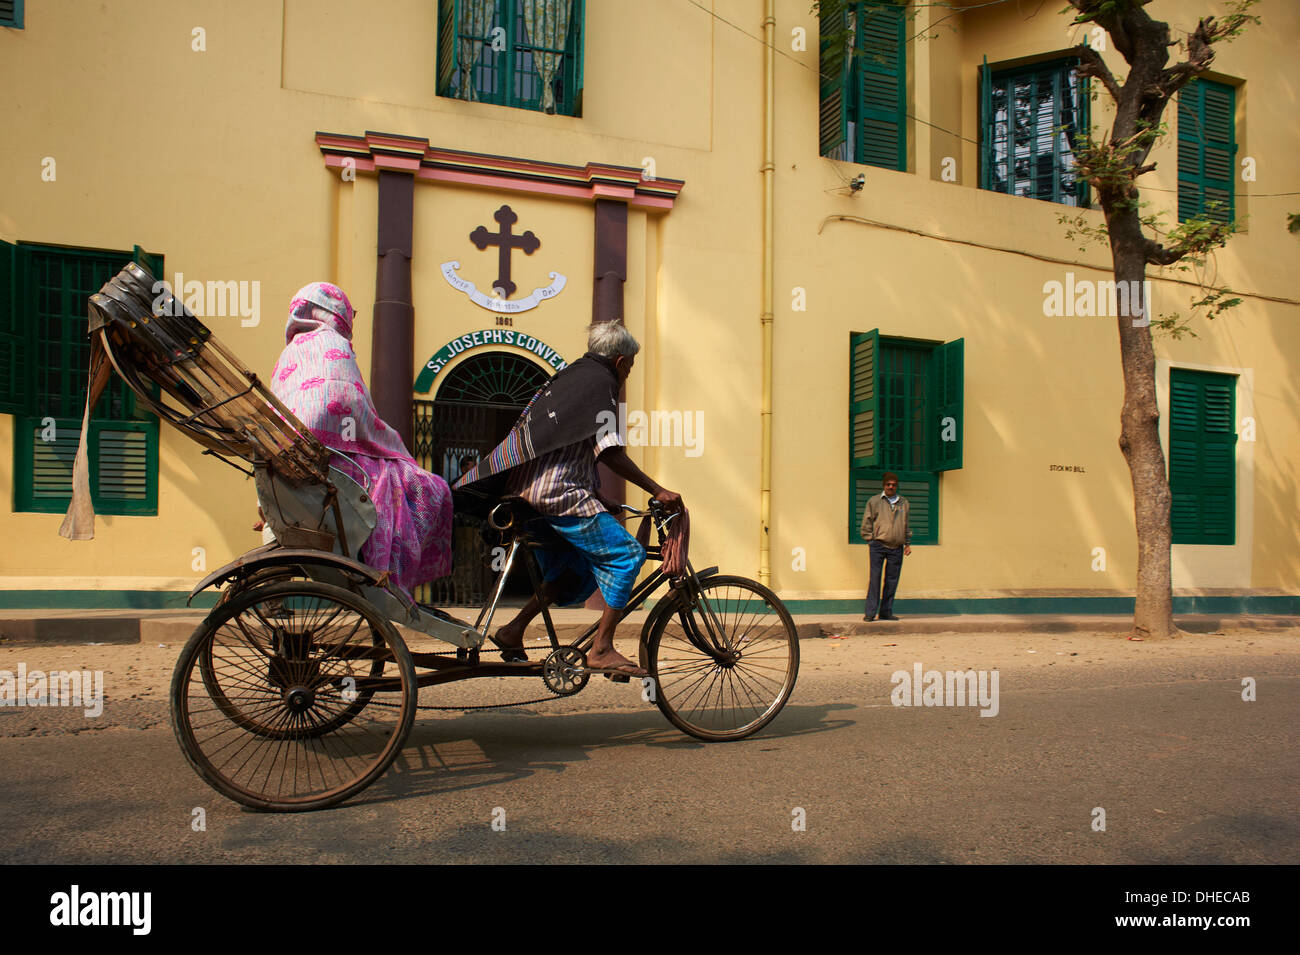 Rickshaw in front of St. Joseph's Convent, Chandernagor (Chandannagar), former French colony, West Bengal, India, Stock Photo